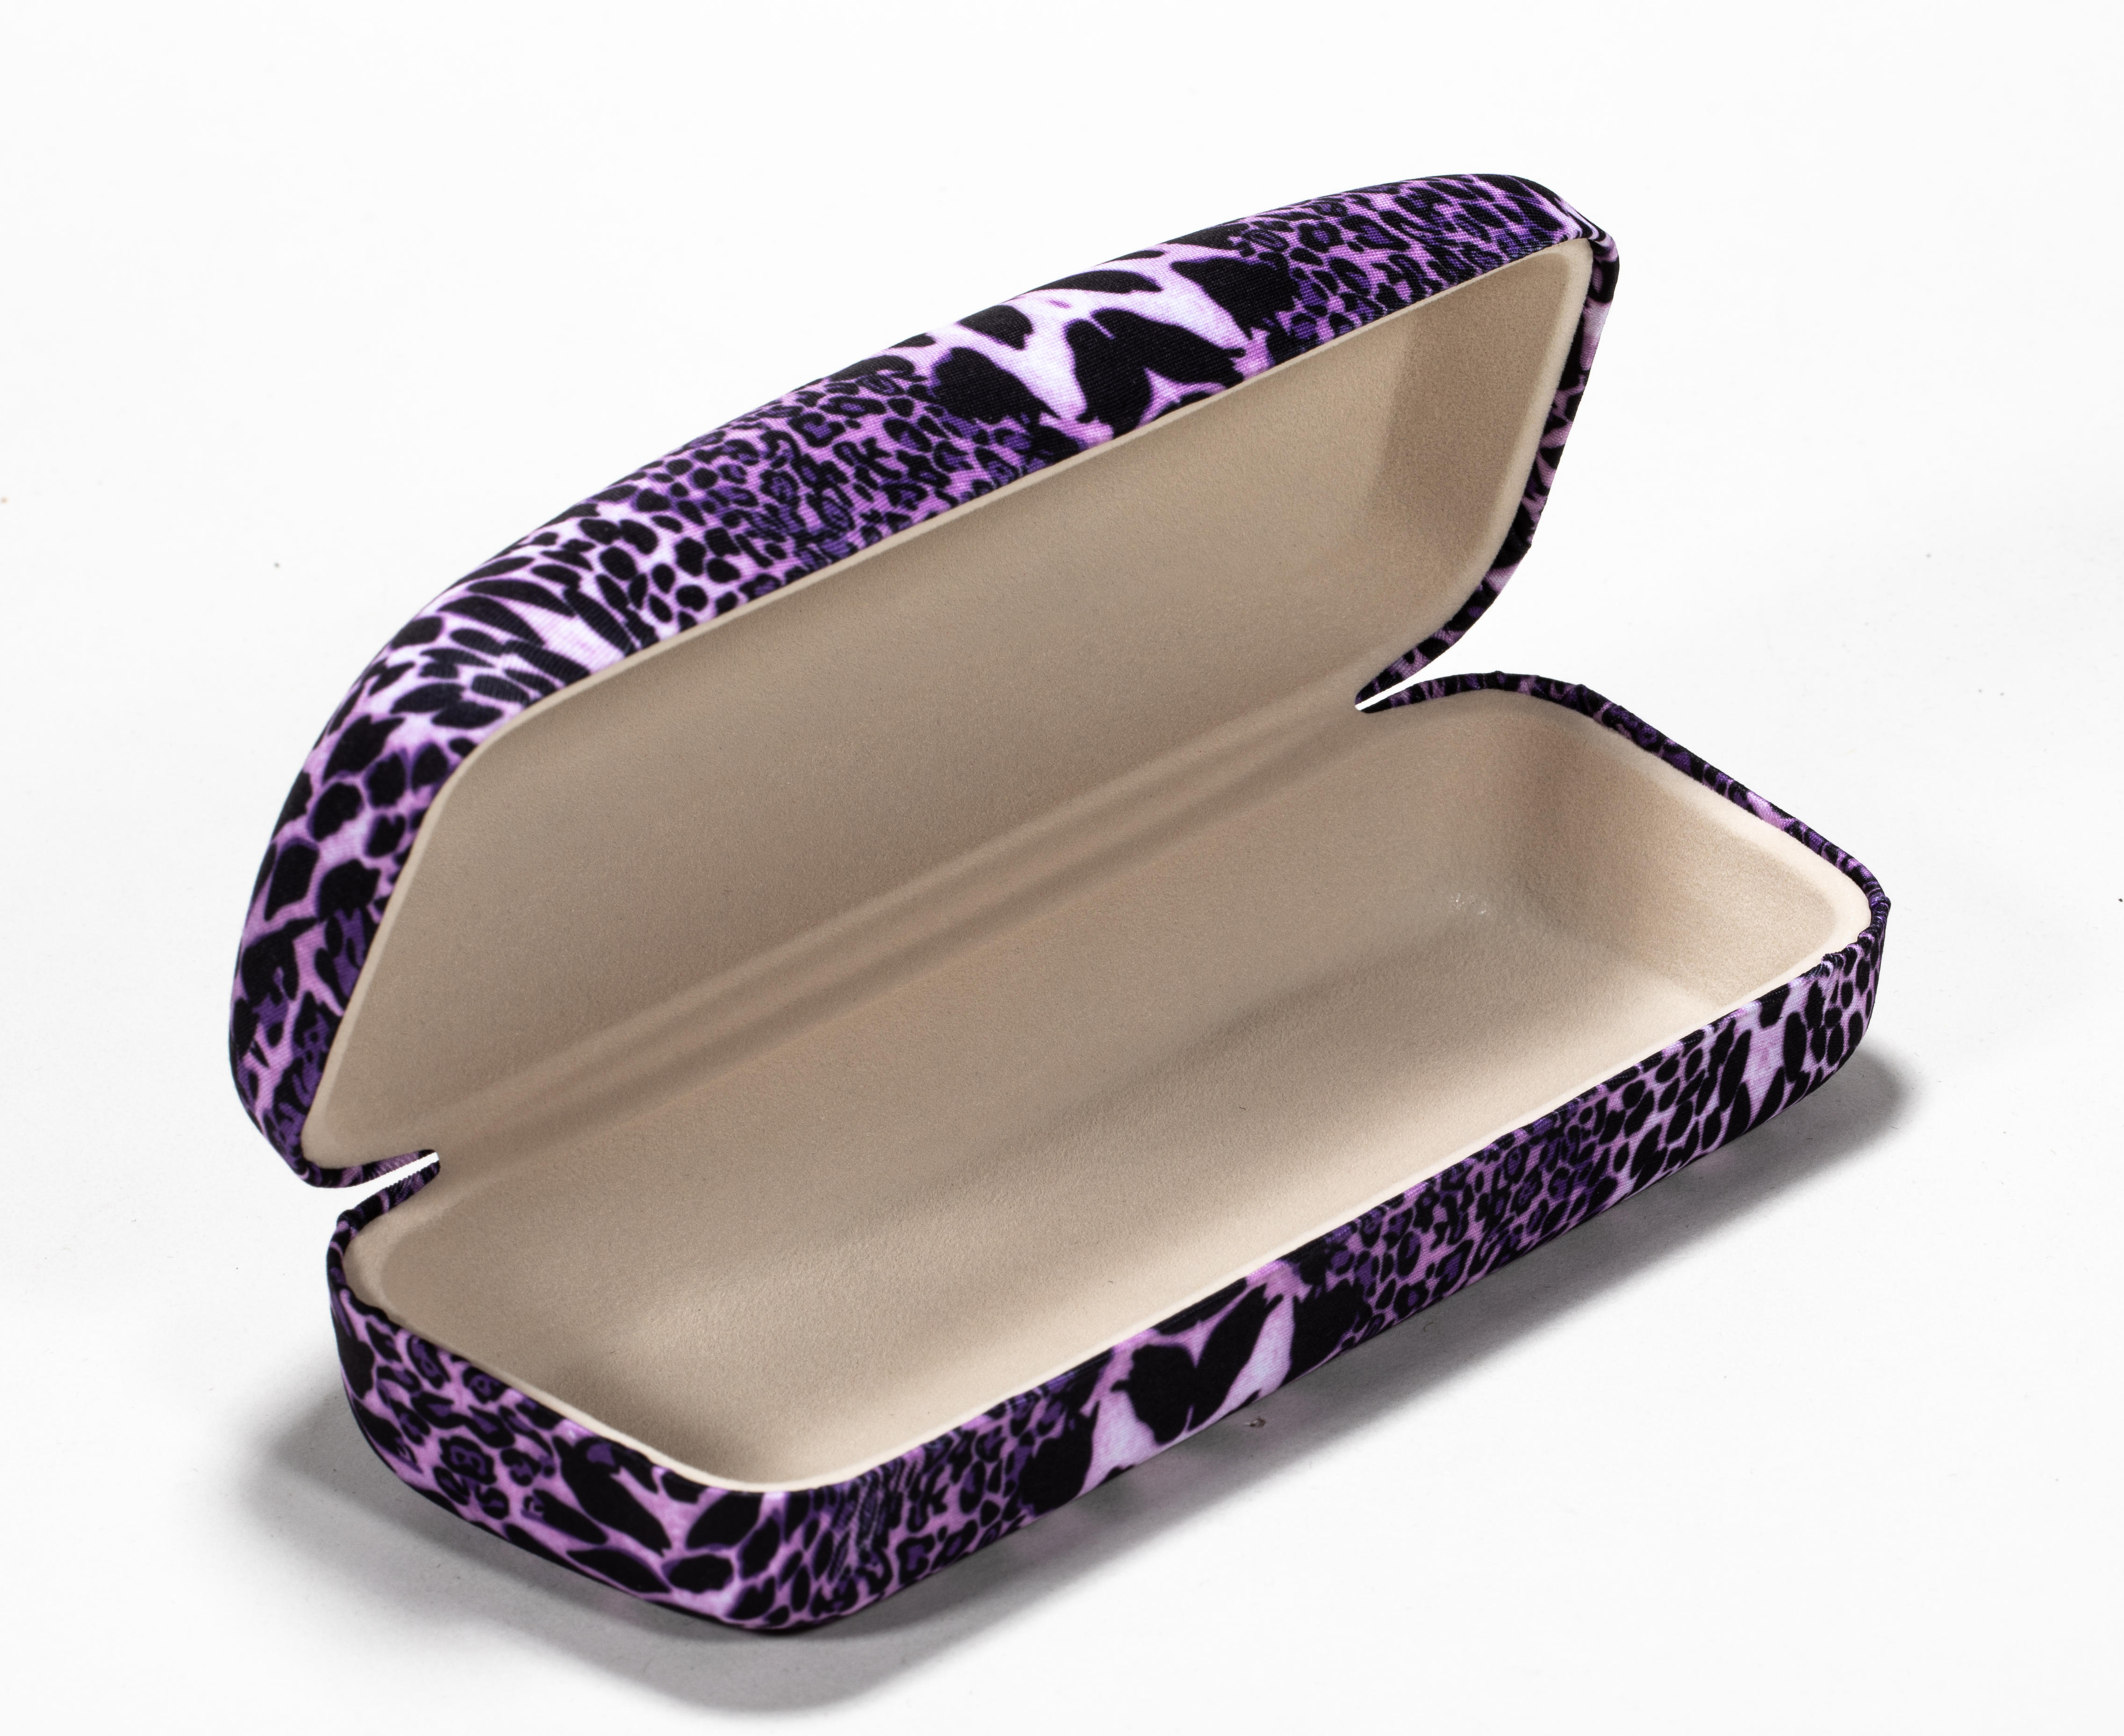 2021 glasses box iron box purple leopard print texture comfortable